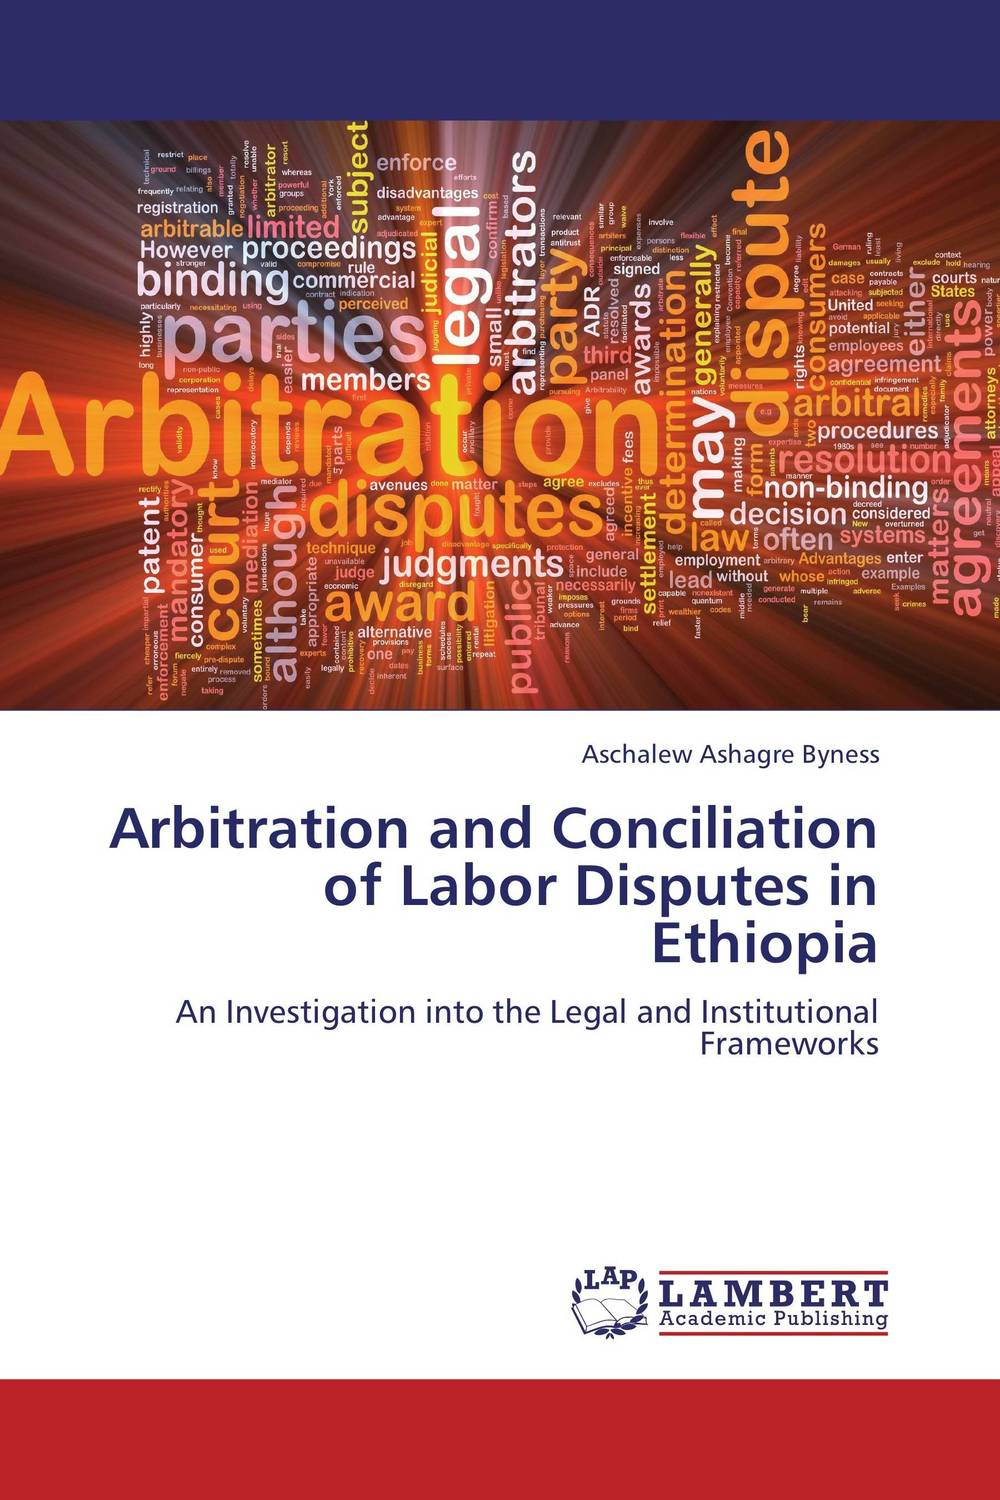 Arbitration and Conciliation of Labor Disputes in Ethiopia